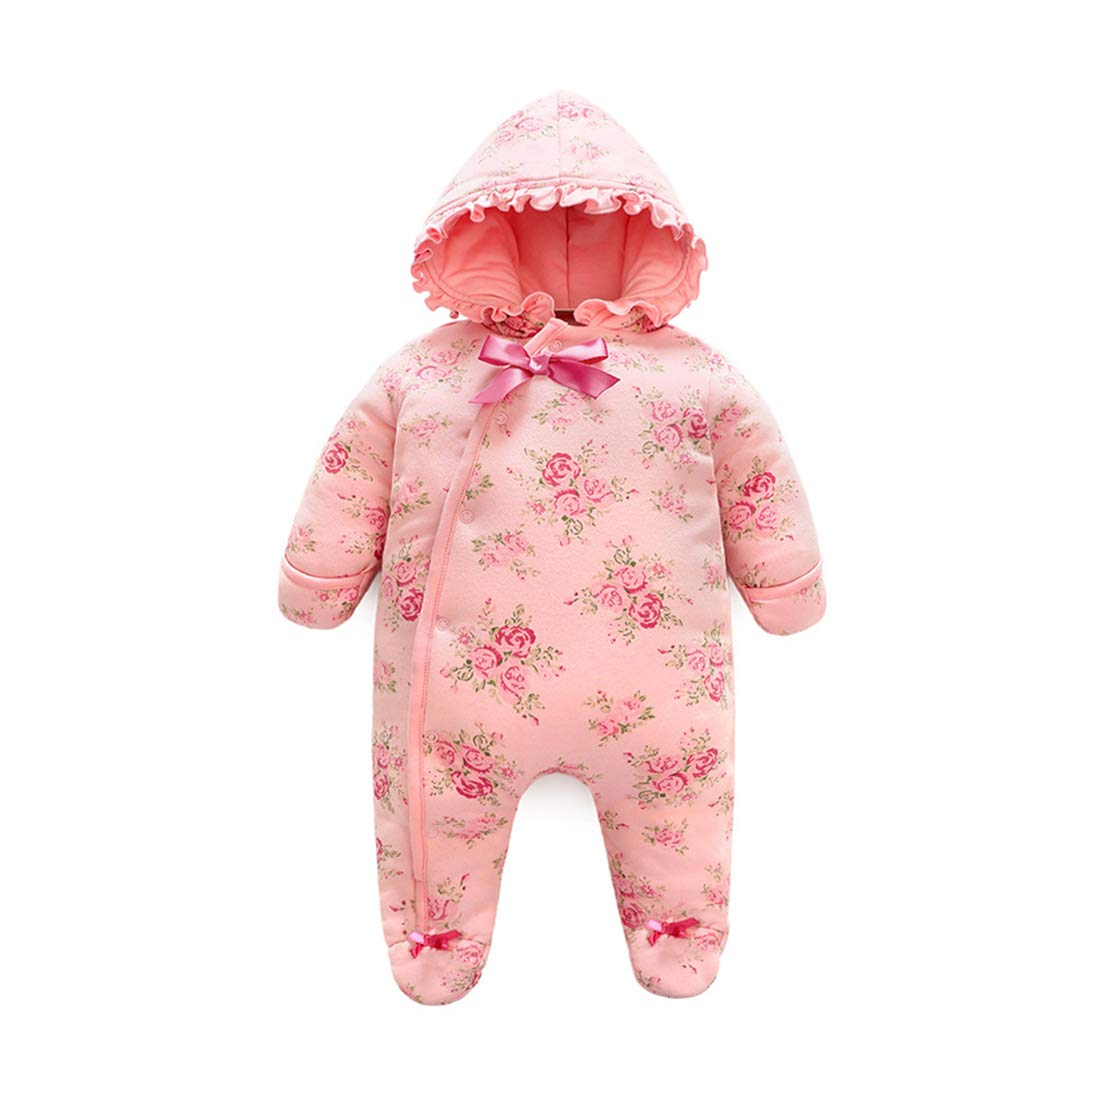 ALLAIBB Infant Baby Girls Floral Warm Thick Sleepsack Hooded Jumpsuit Romper Outwear